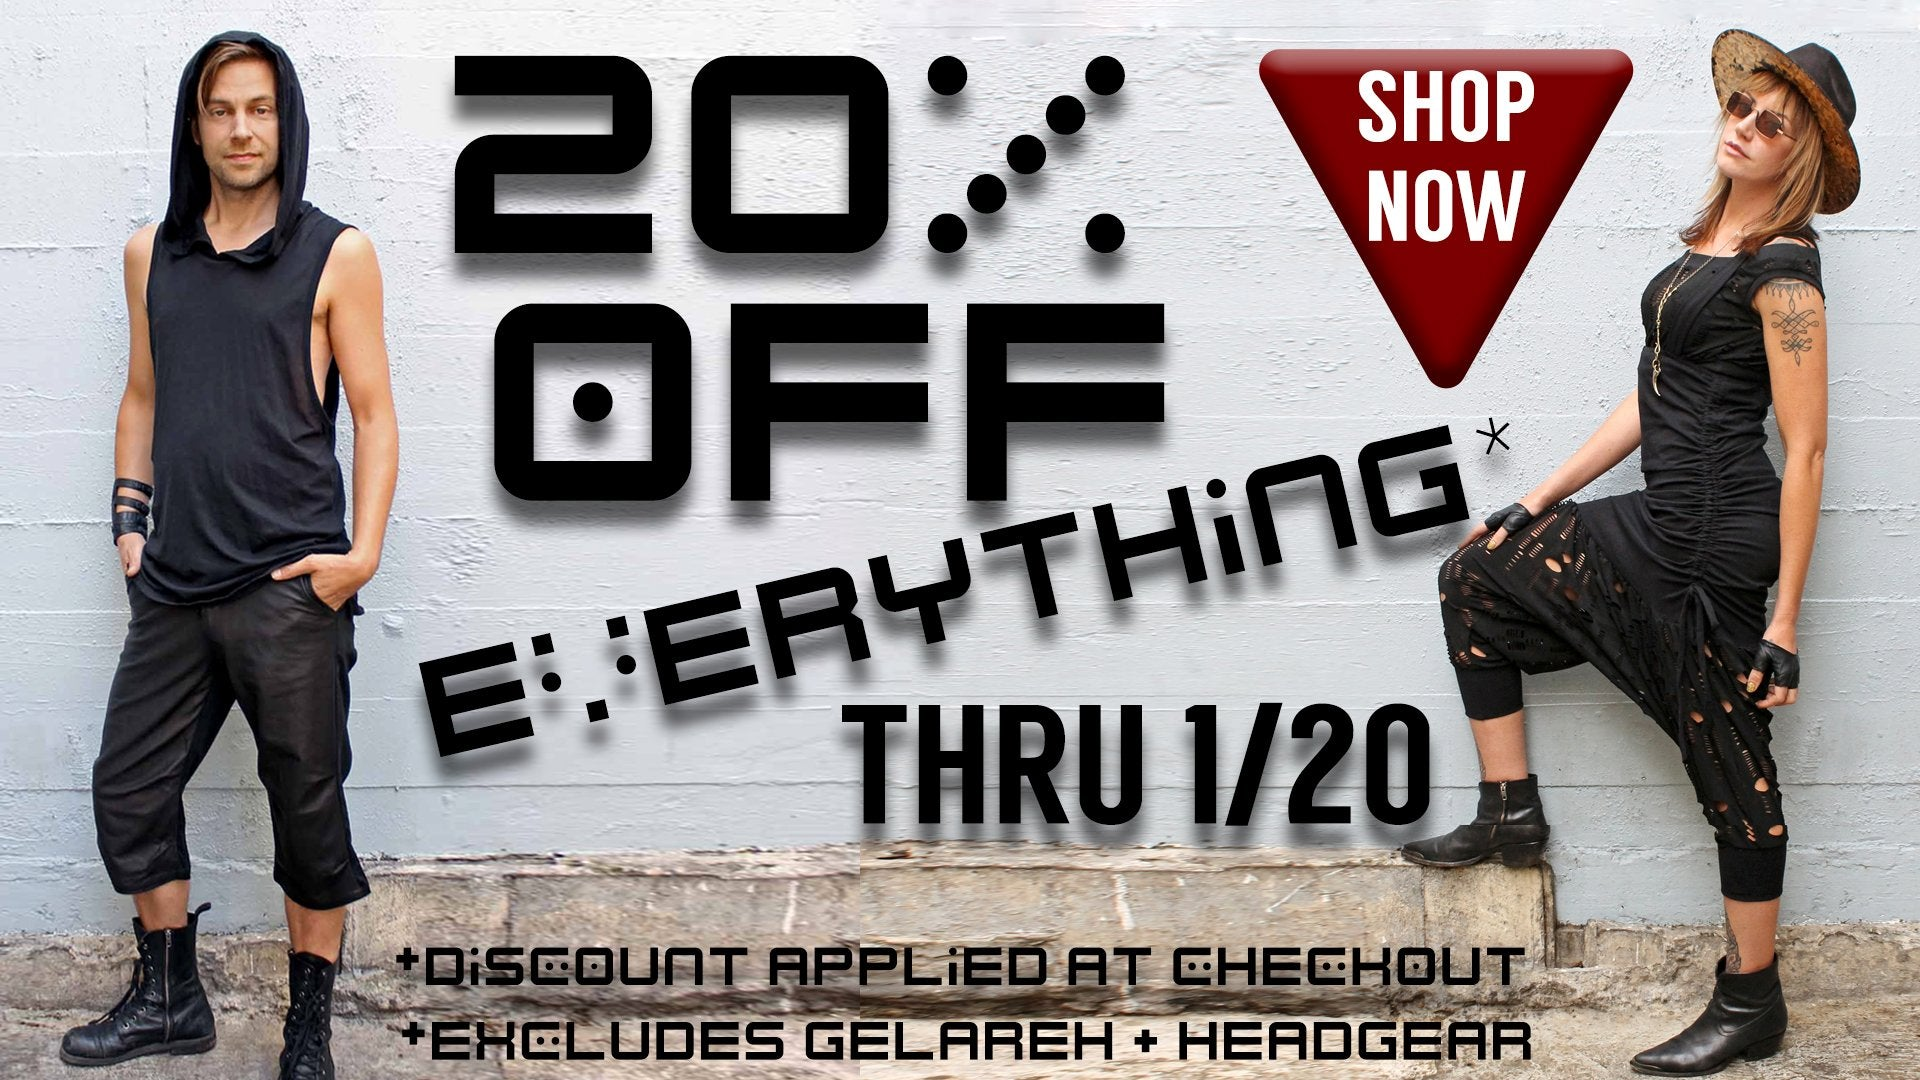 20% off Regular Priced items *Excludes Gelareh & Headgear